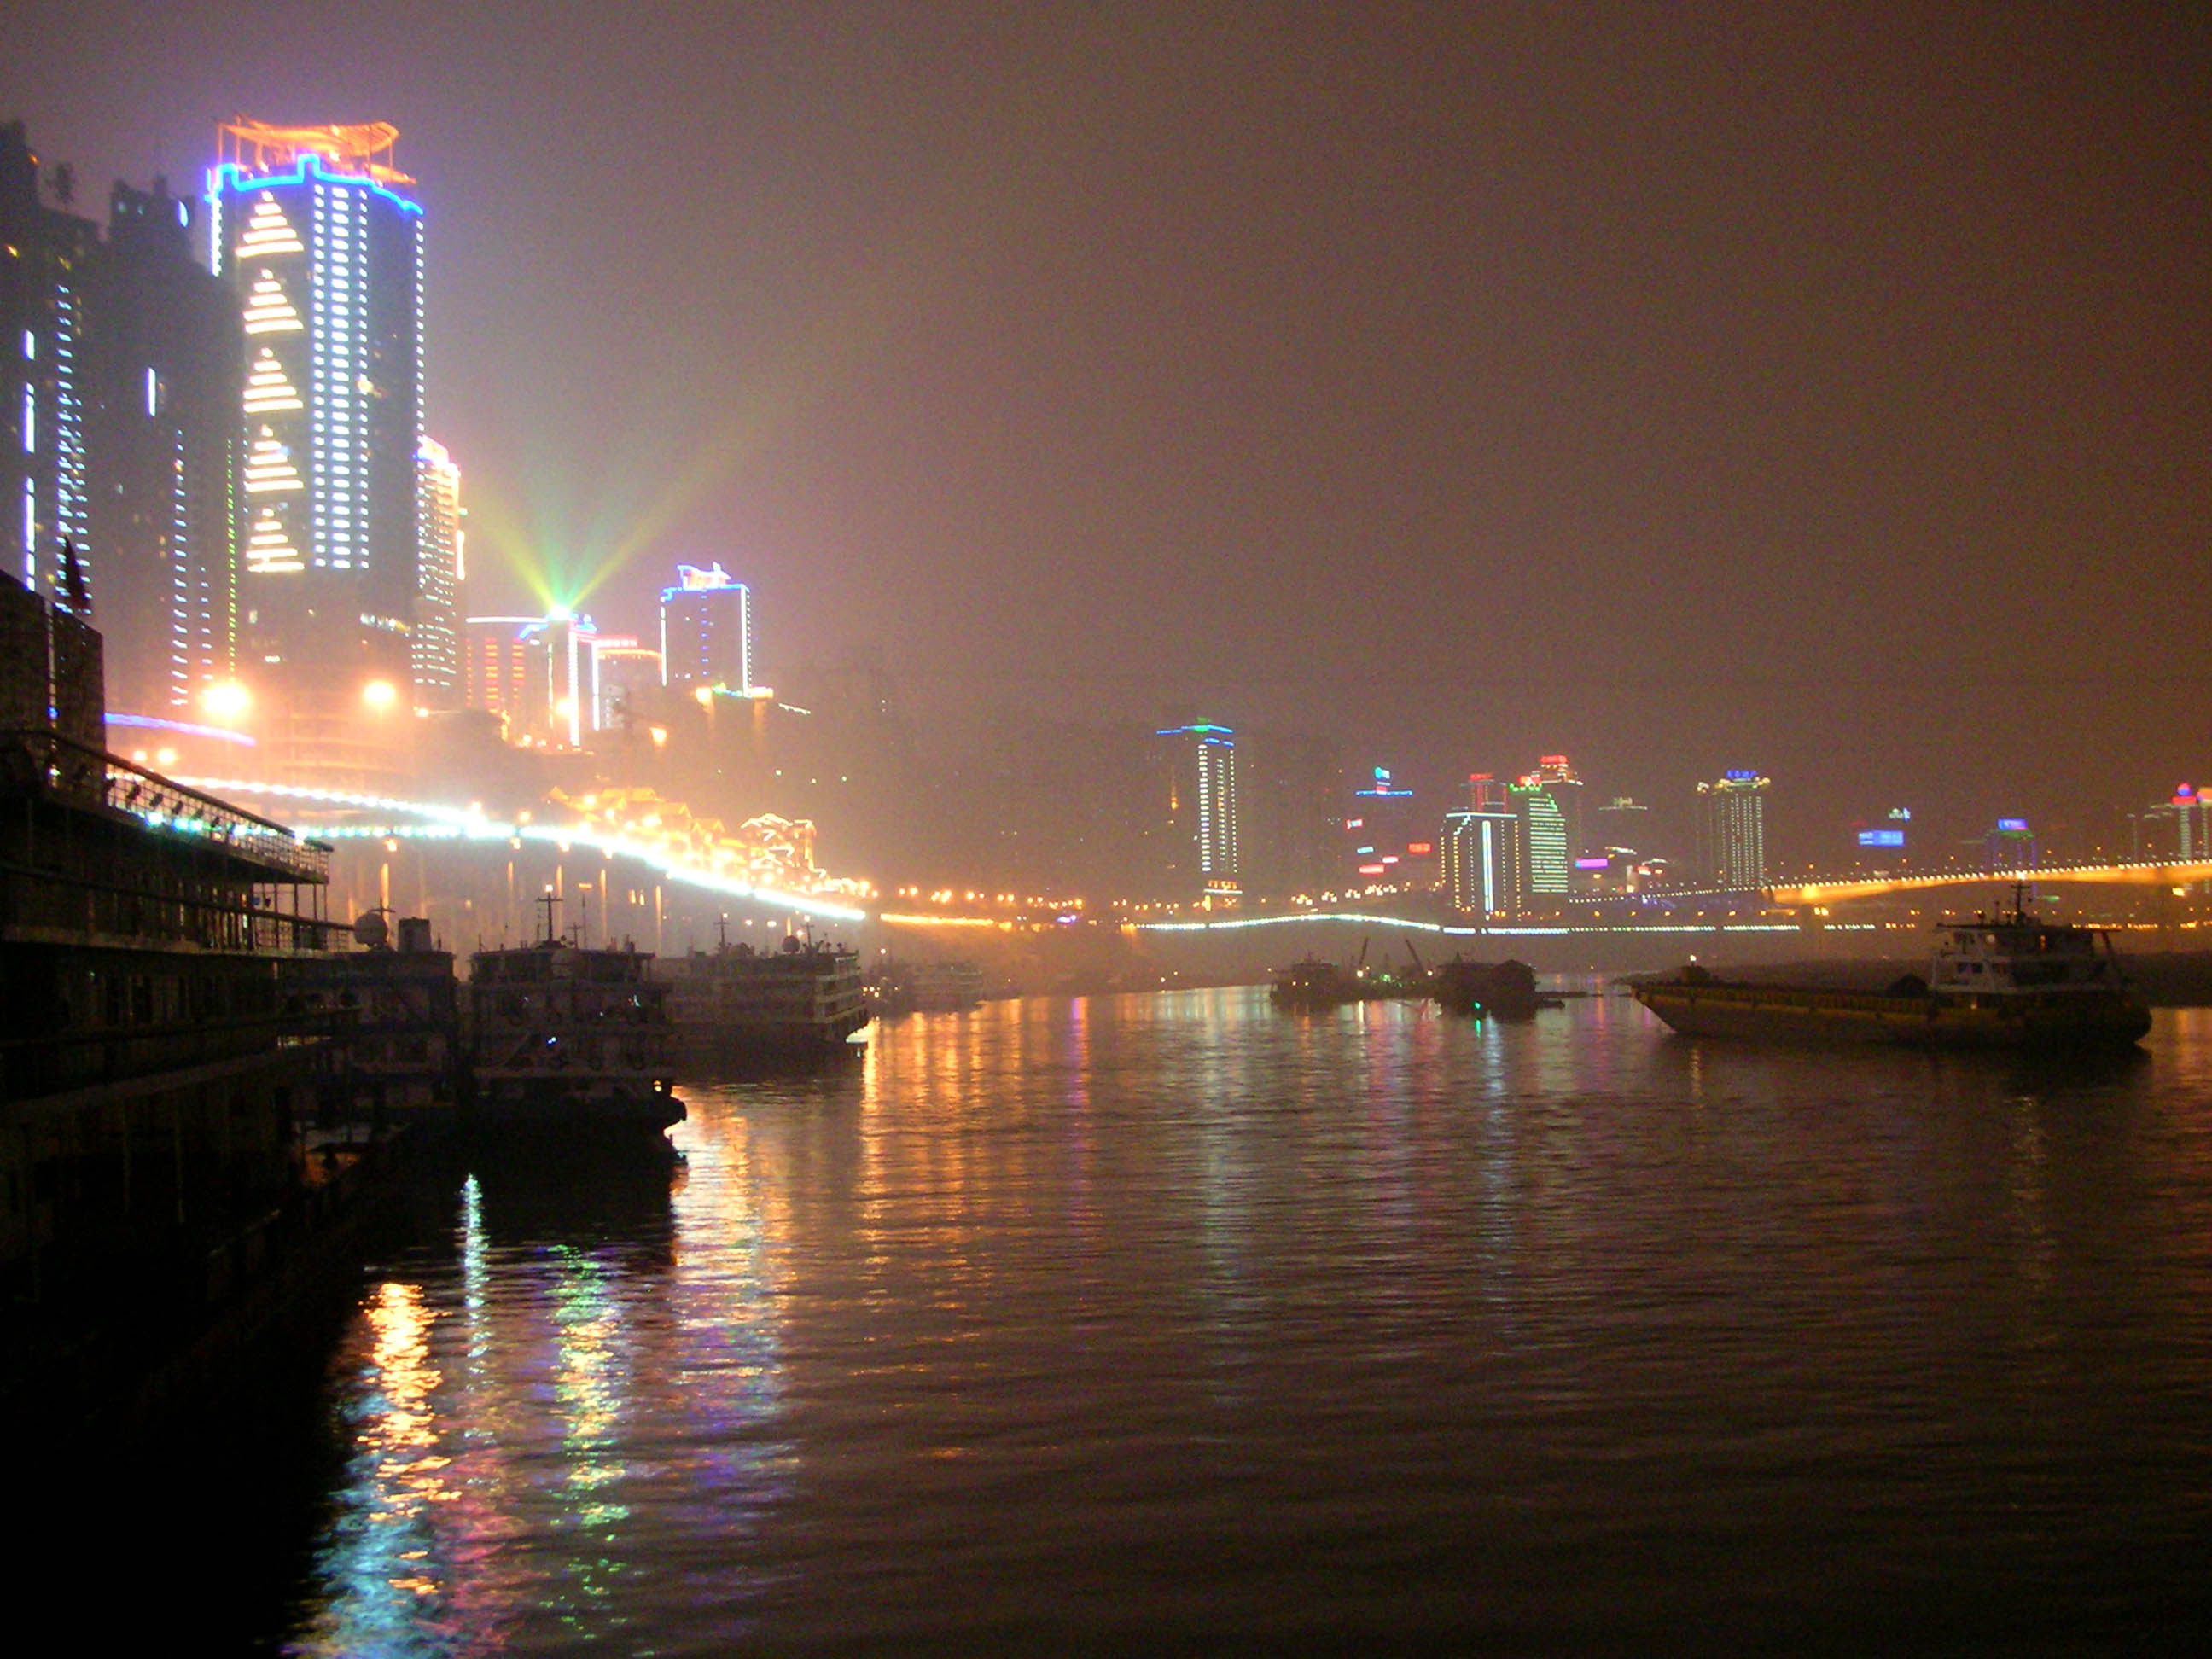 Departing Chongqing and it's neon skyline, via the Yangzi River (Chang Jiang).